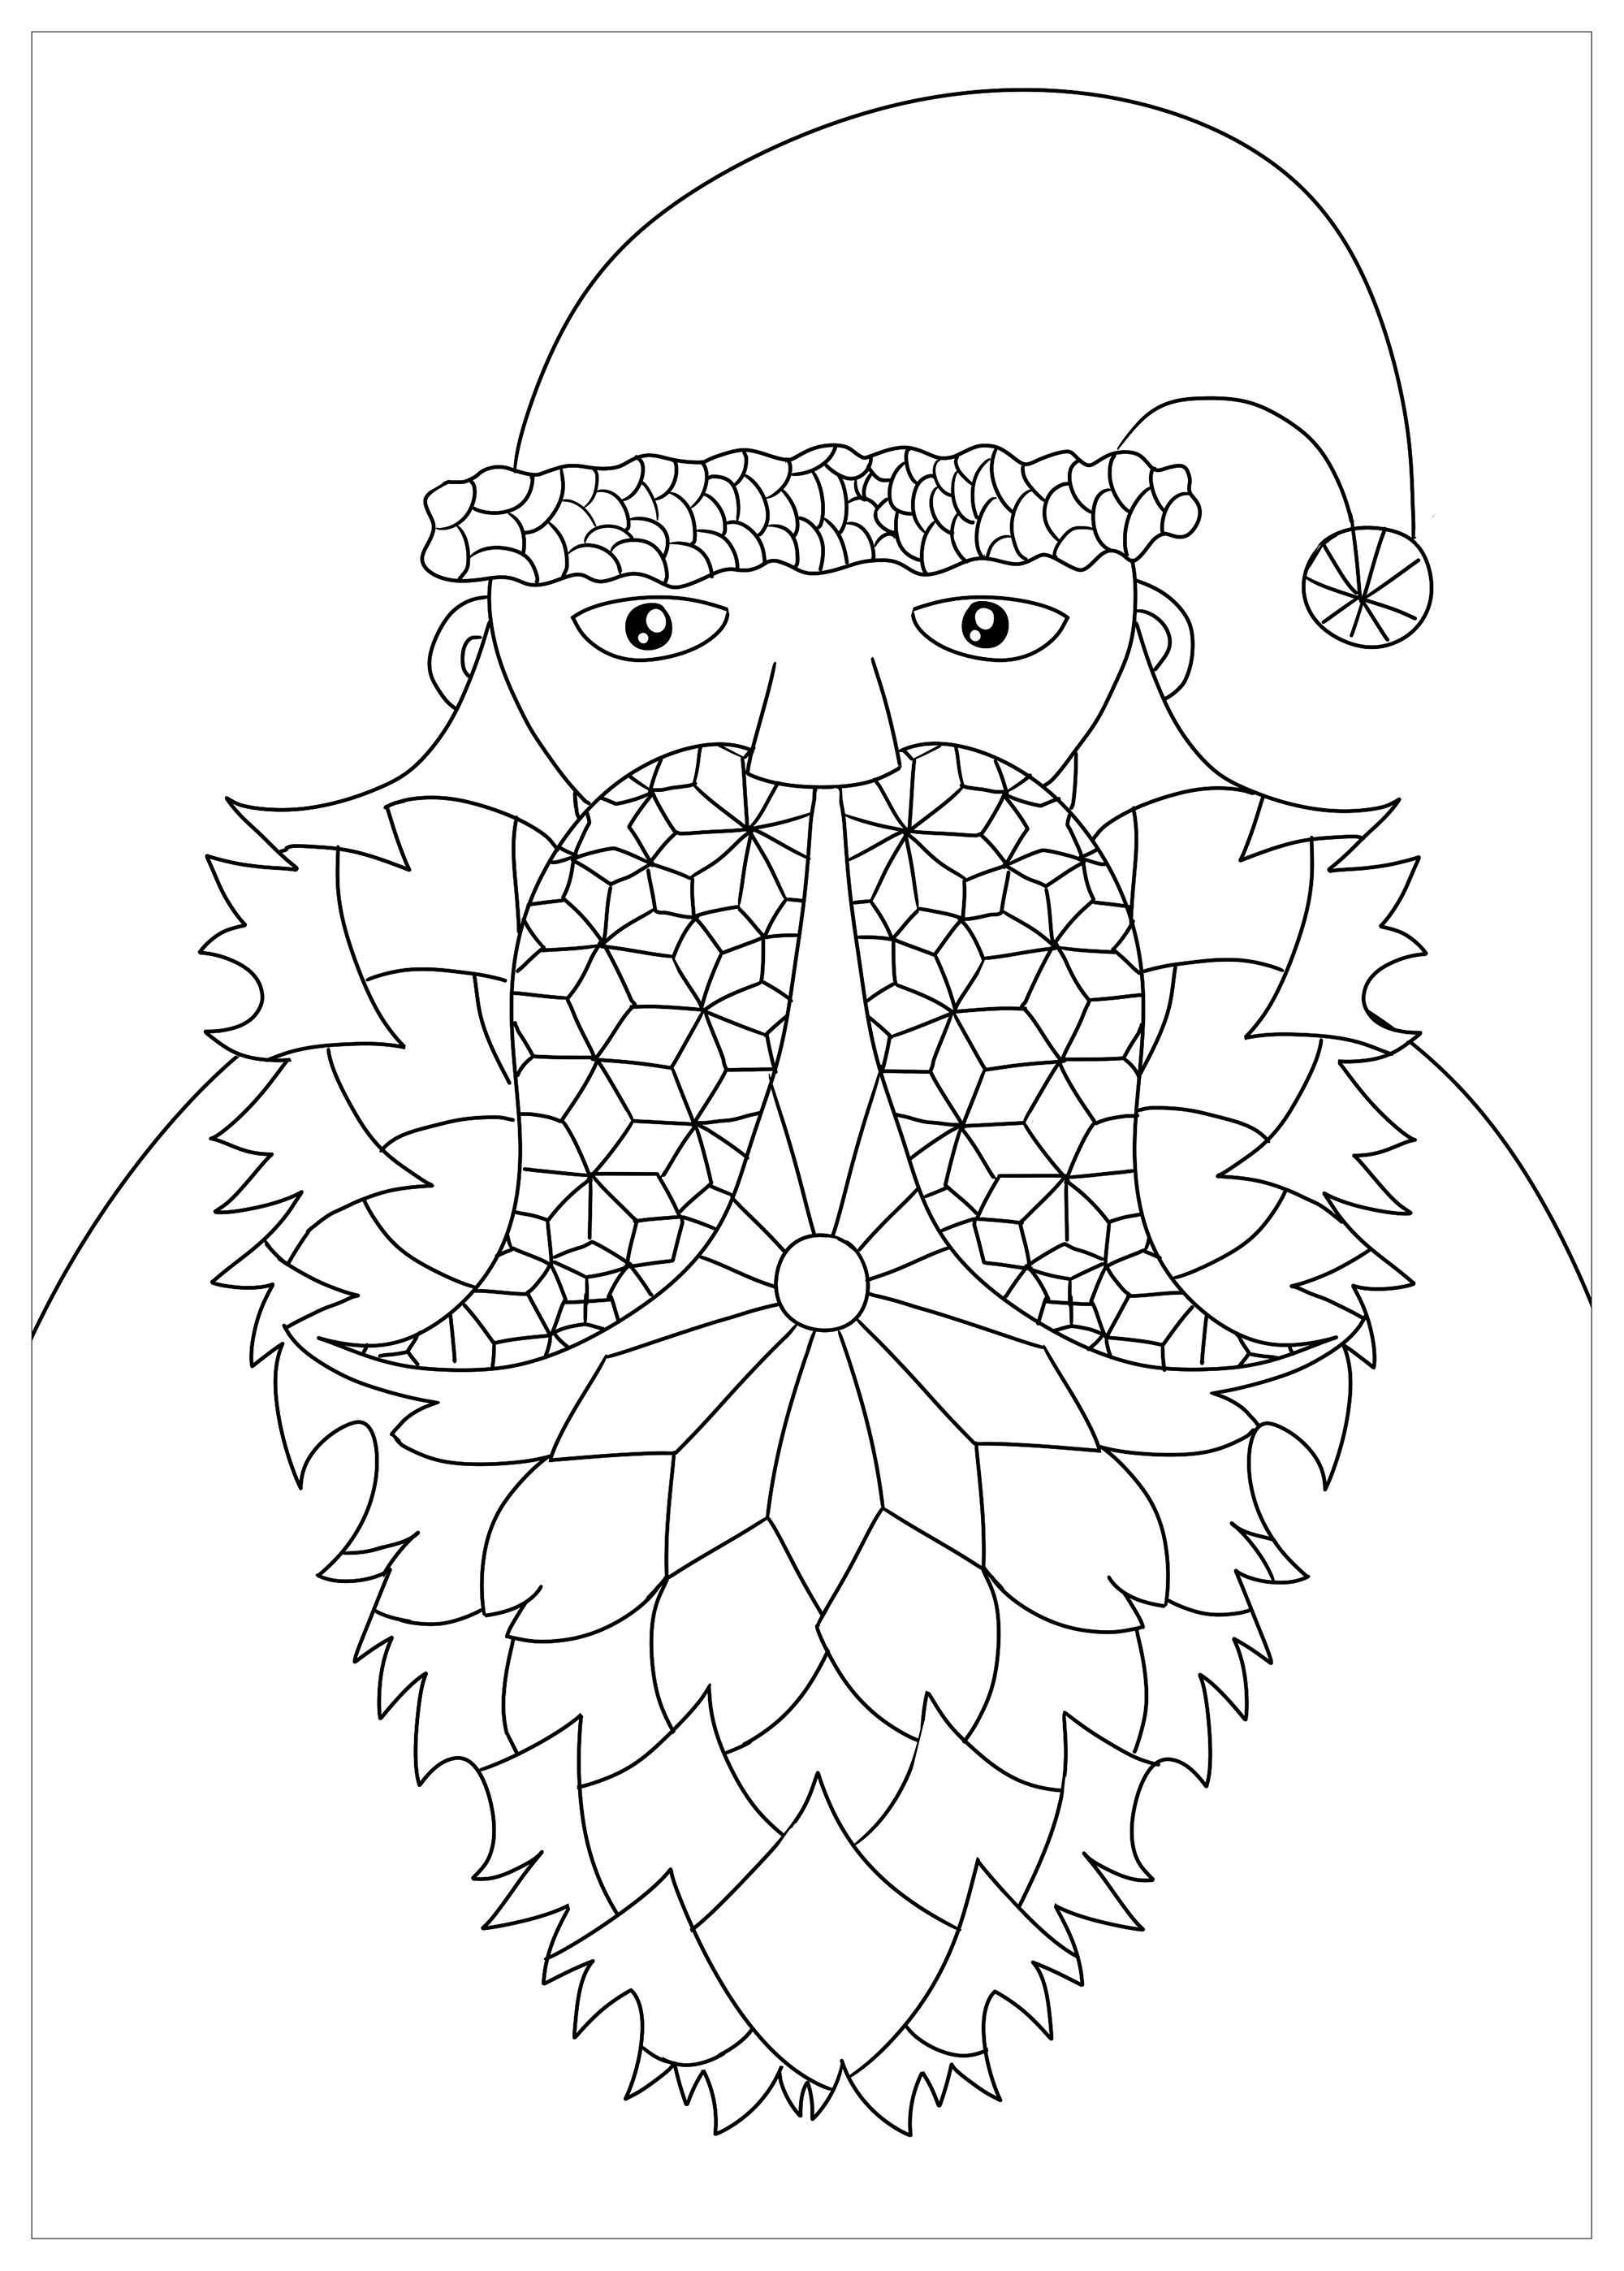 Nightmare Before Christmas Santa Coloring Page